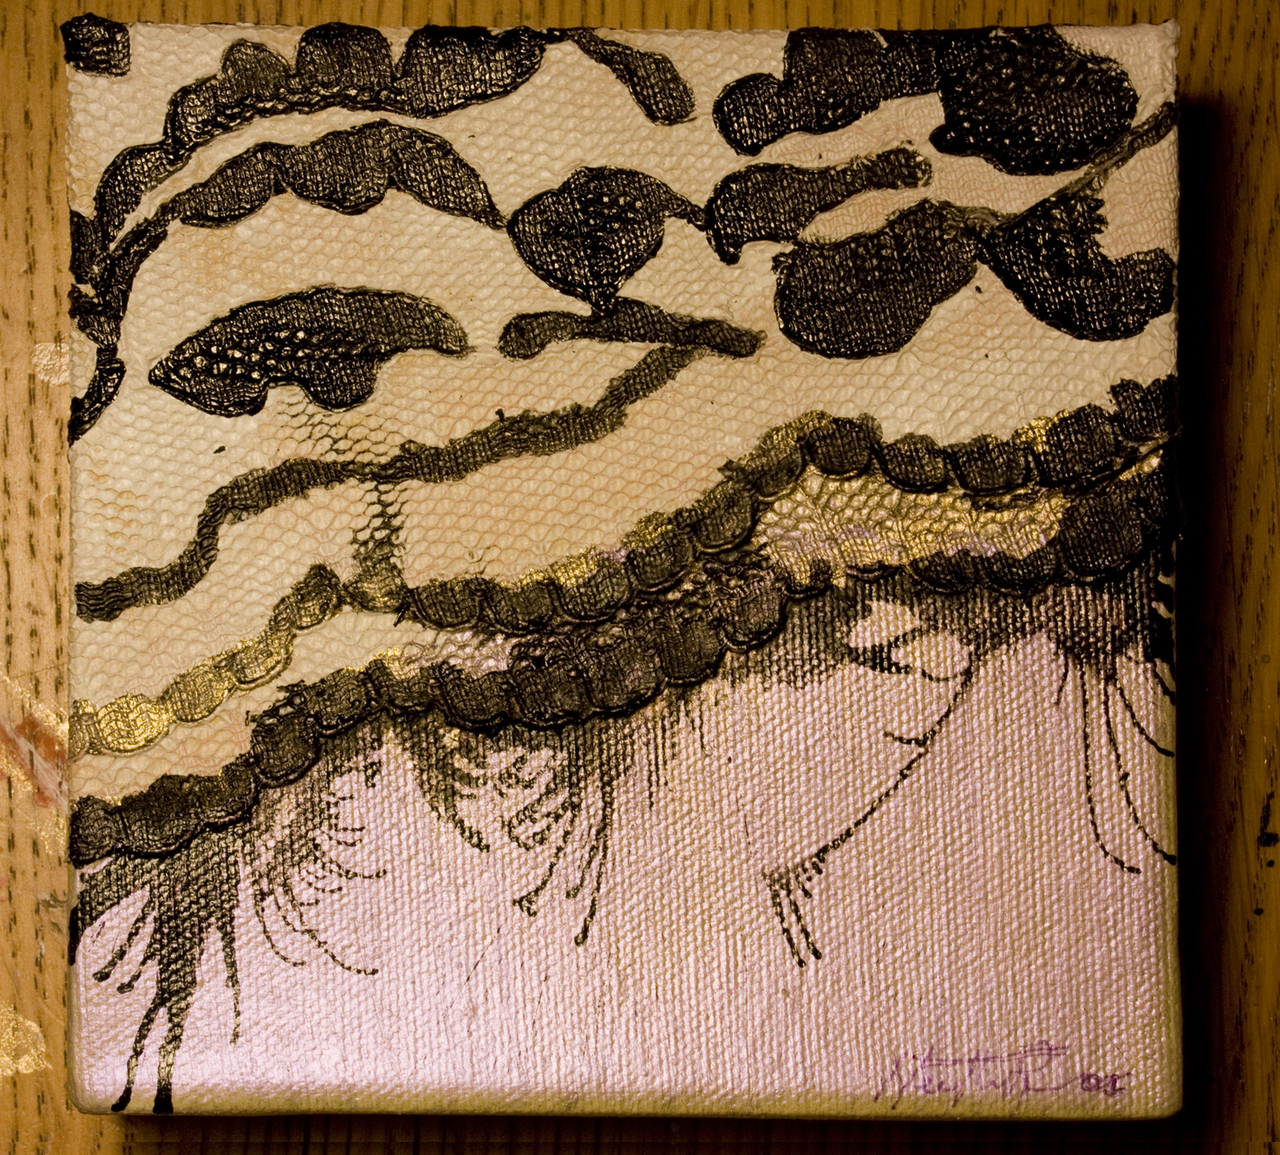 January 23, 2009.  Revisiting lace.     Medium: Acrylic, ink and fabric on canvas